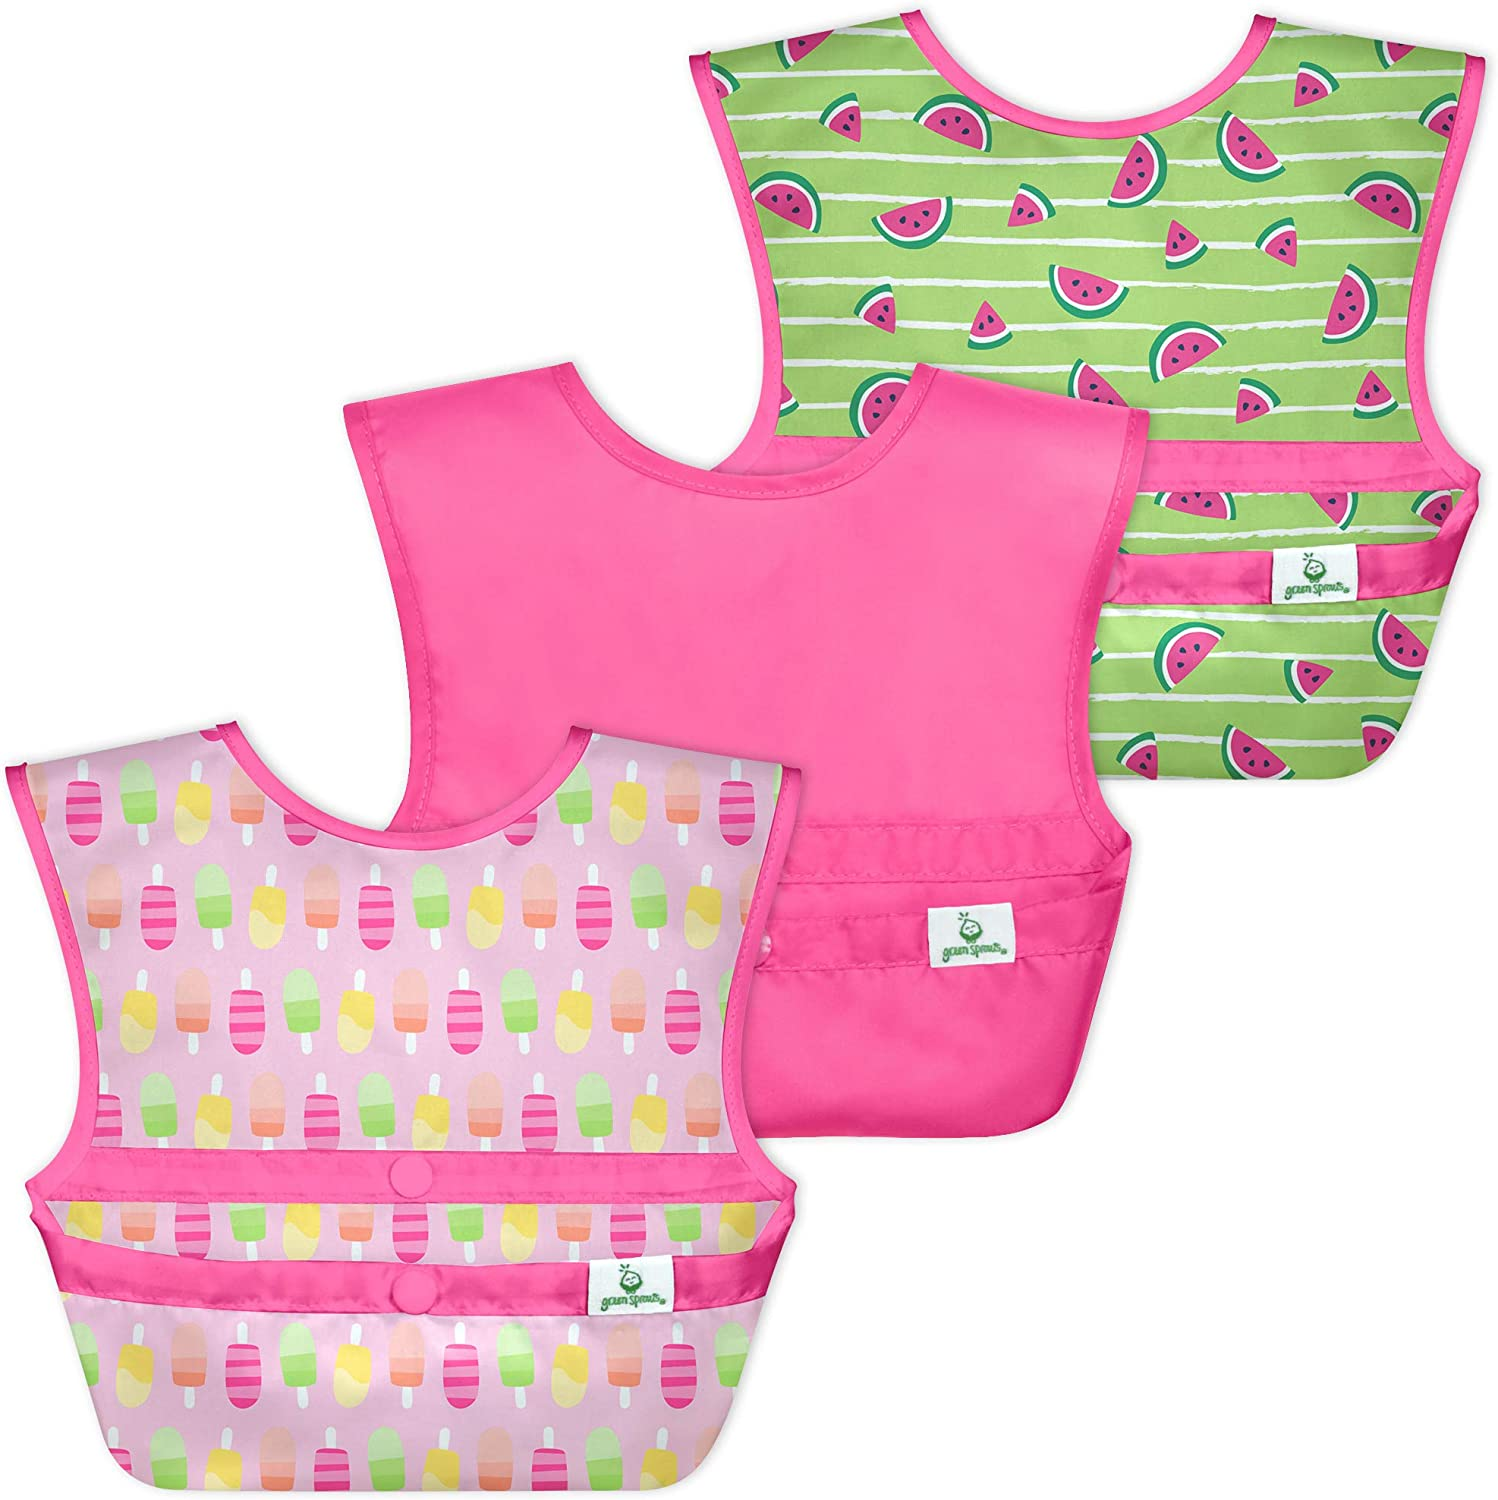 green sprouts Snap and Go Easy-wear Bibs for Baby and Toddler